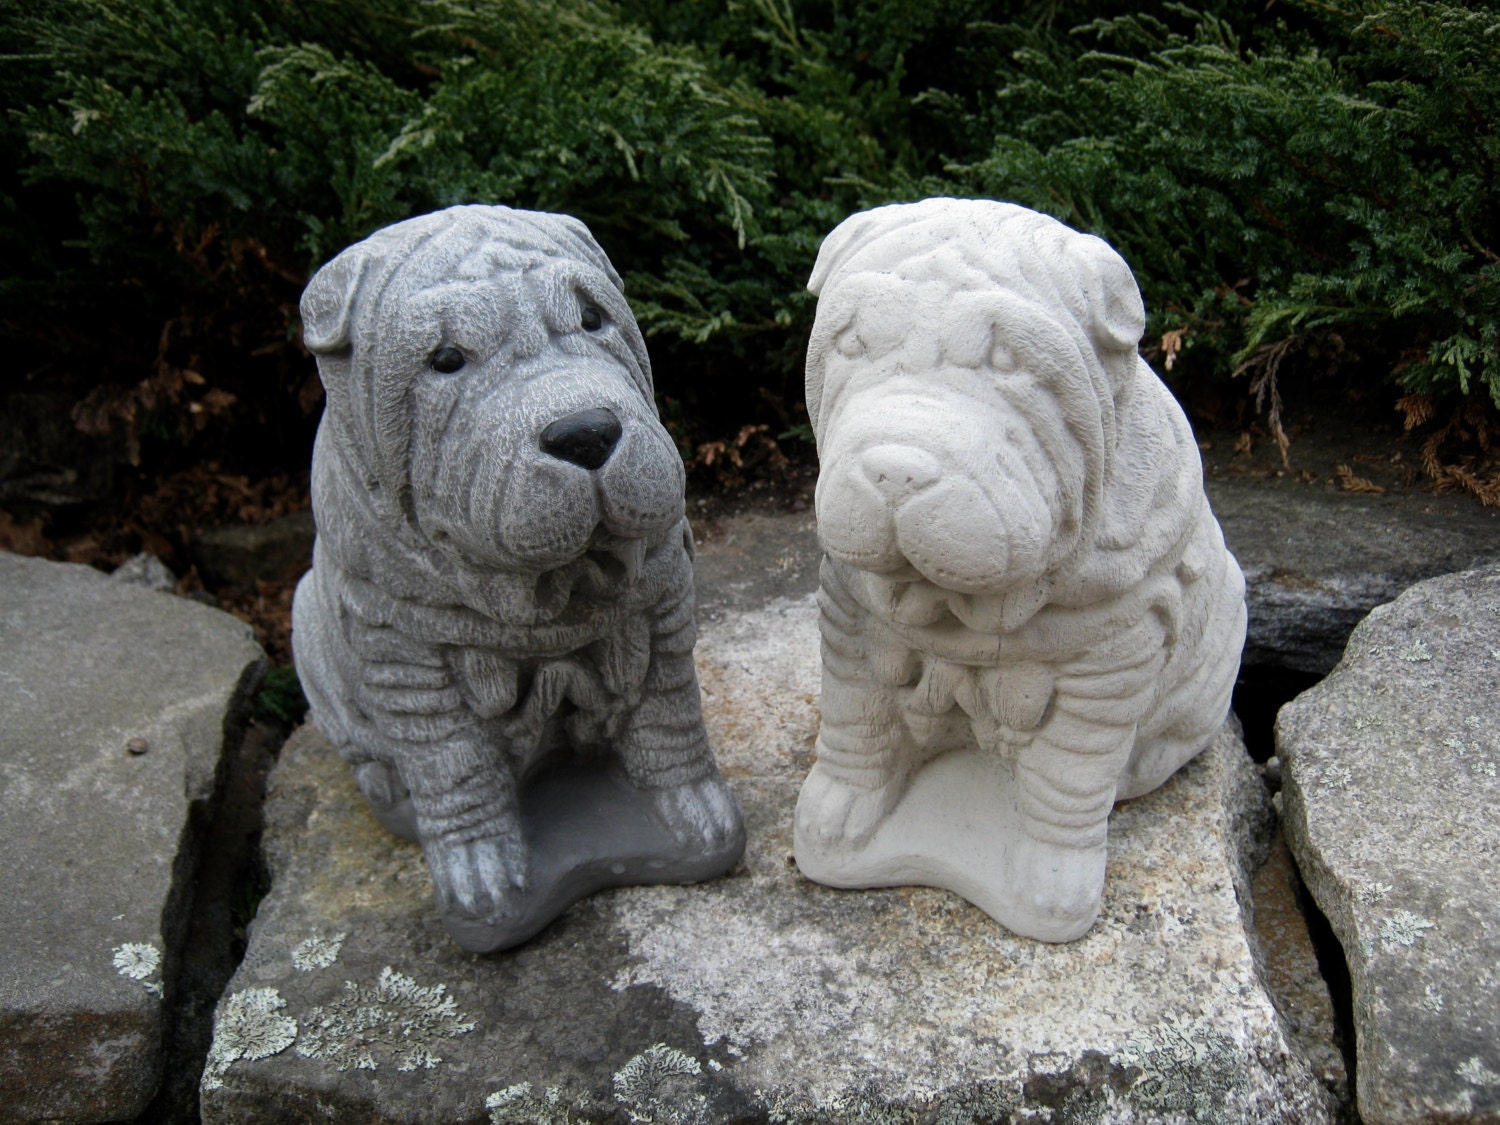 Sharpei Dog Statue Concrete Dog Statues Pet Memorial Head. Patio Heating.com. Covered Patio Ideas. Patio Designs Essex. Decorating Patio Area. Outdoor Patio Cooler. Flagstone Patio Next To House. Porch And Patio Images. Patio Landscaping Ideas Photos